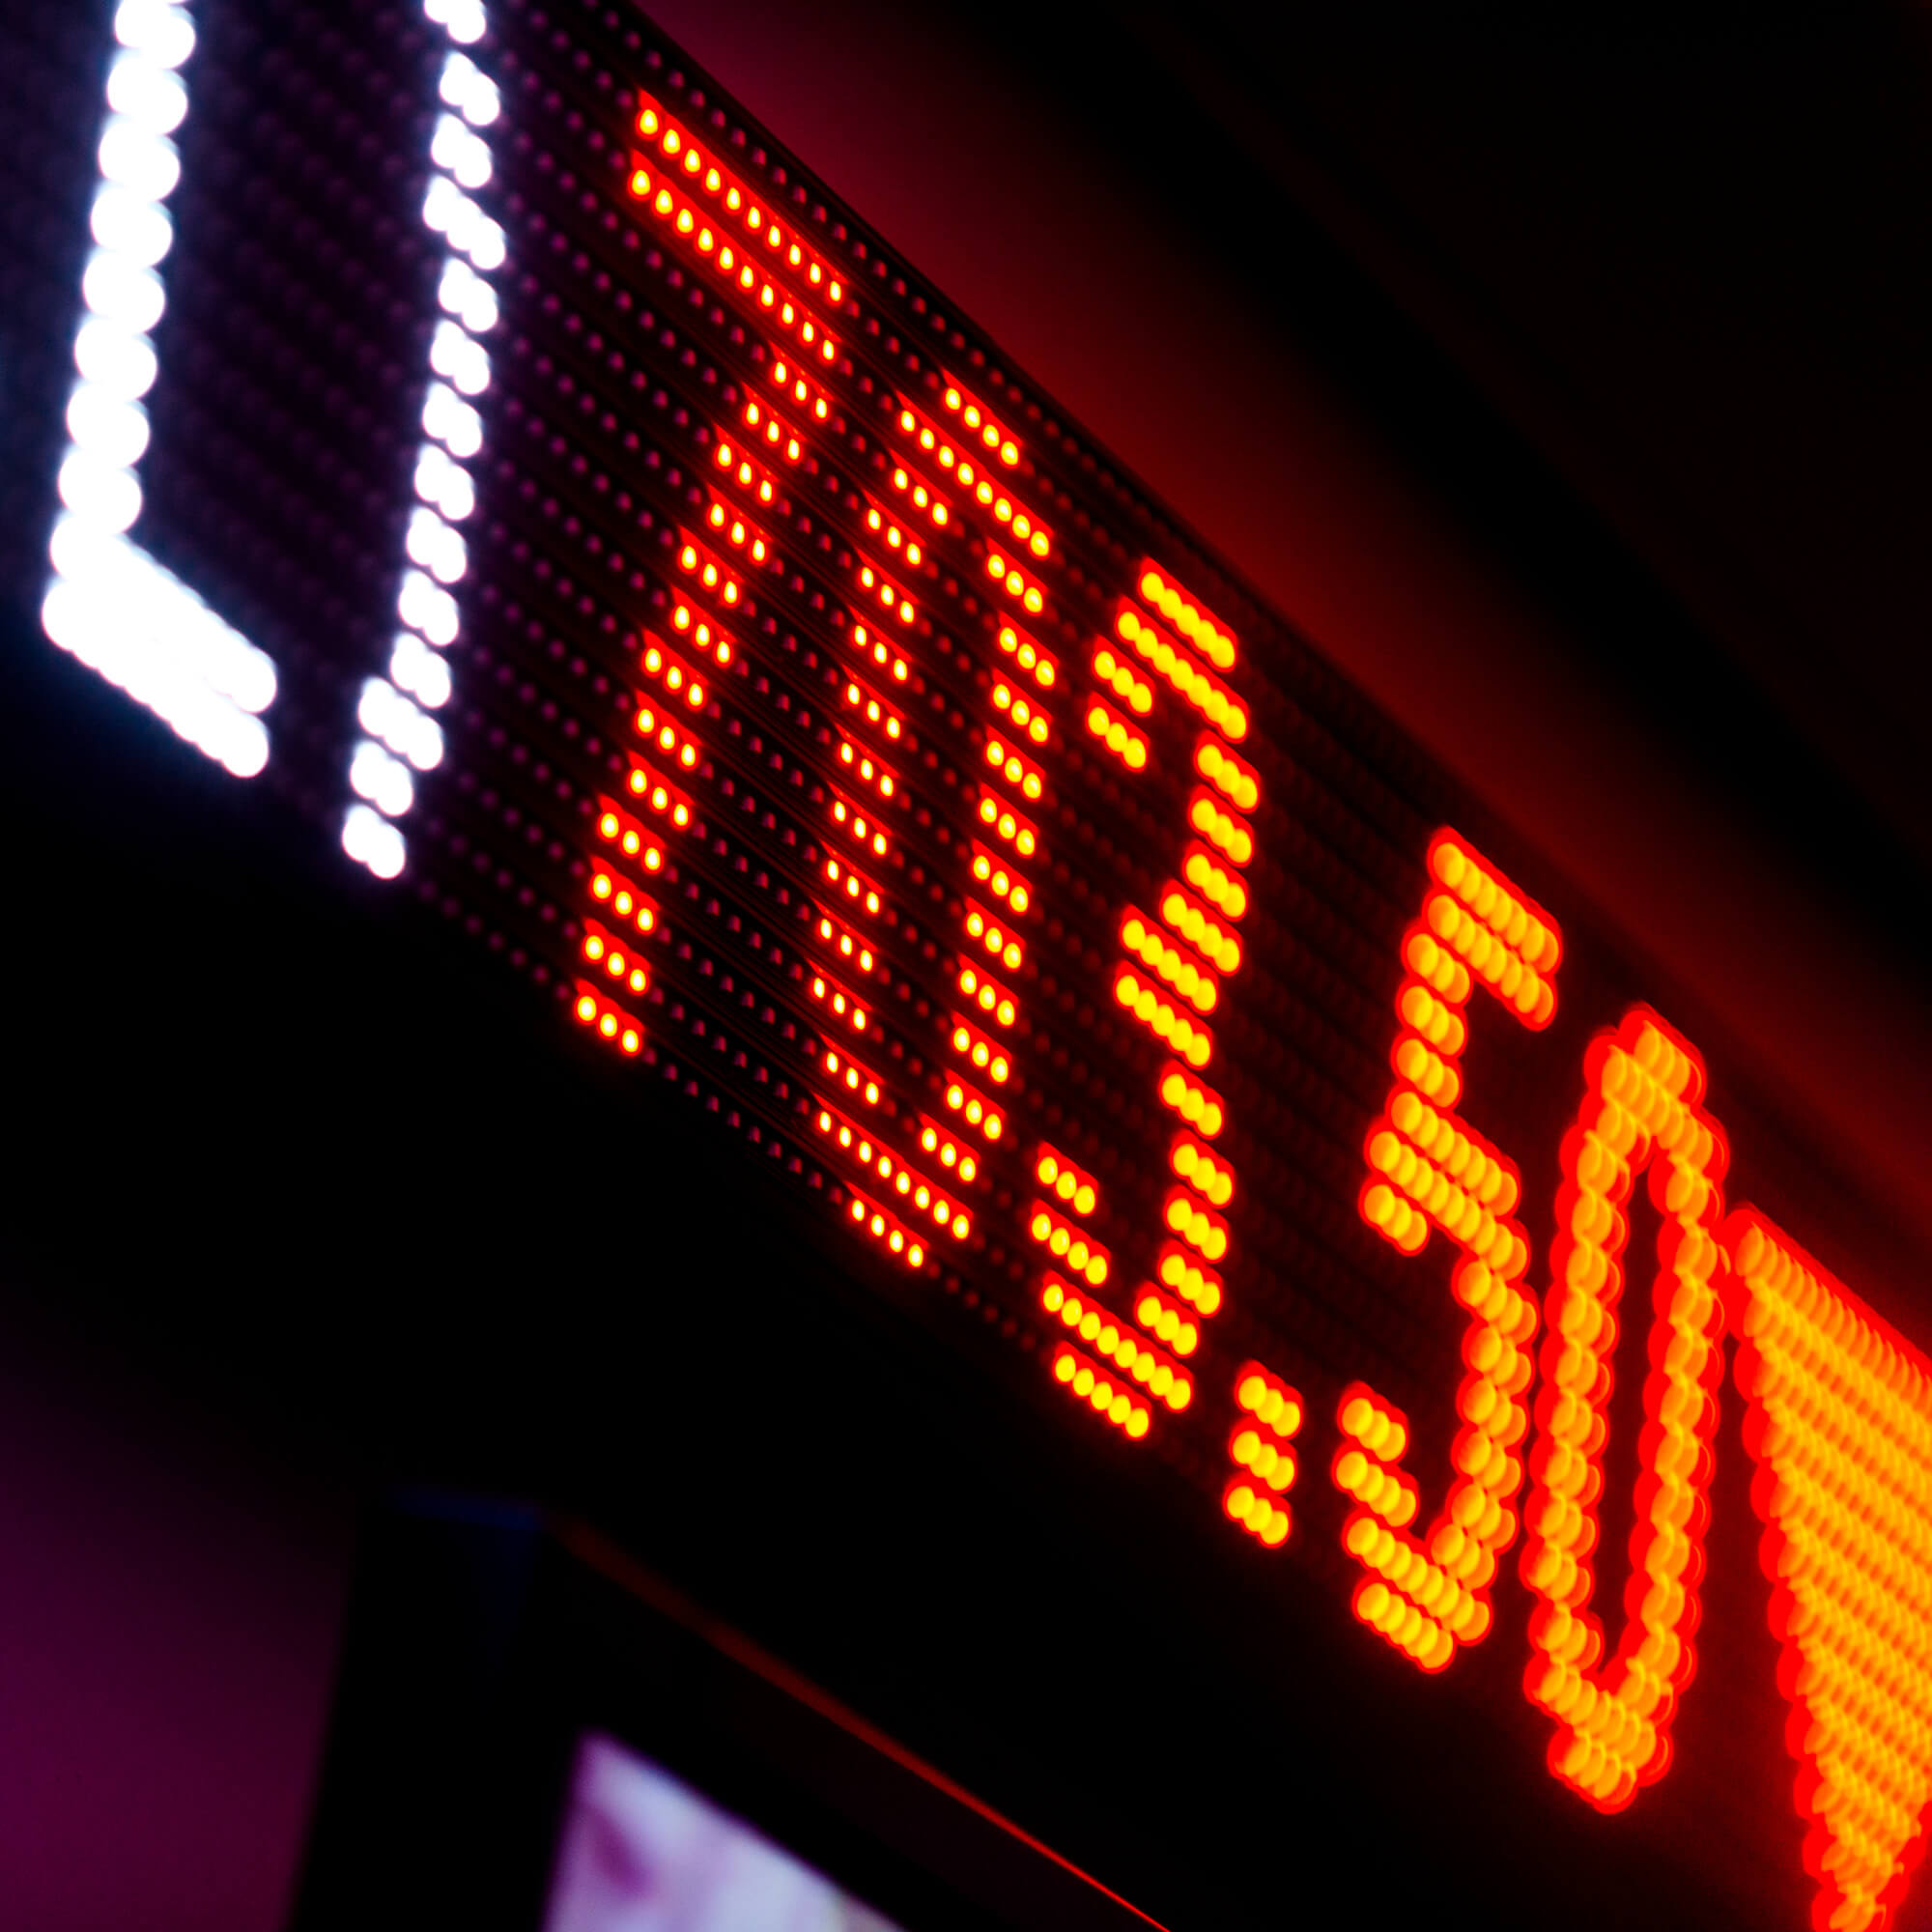 An led stock ticker from the University of Derby Bloomberg suite